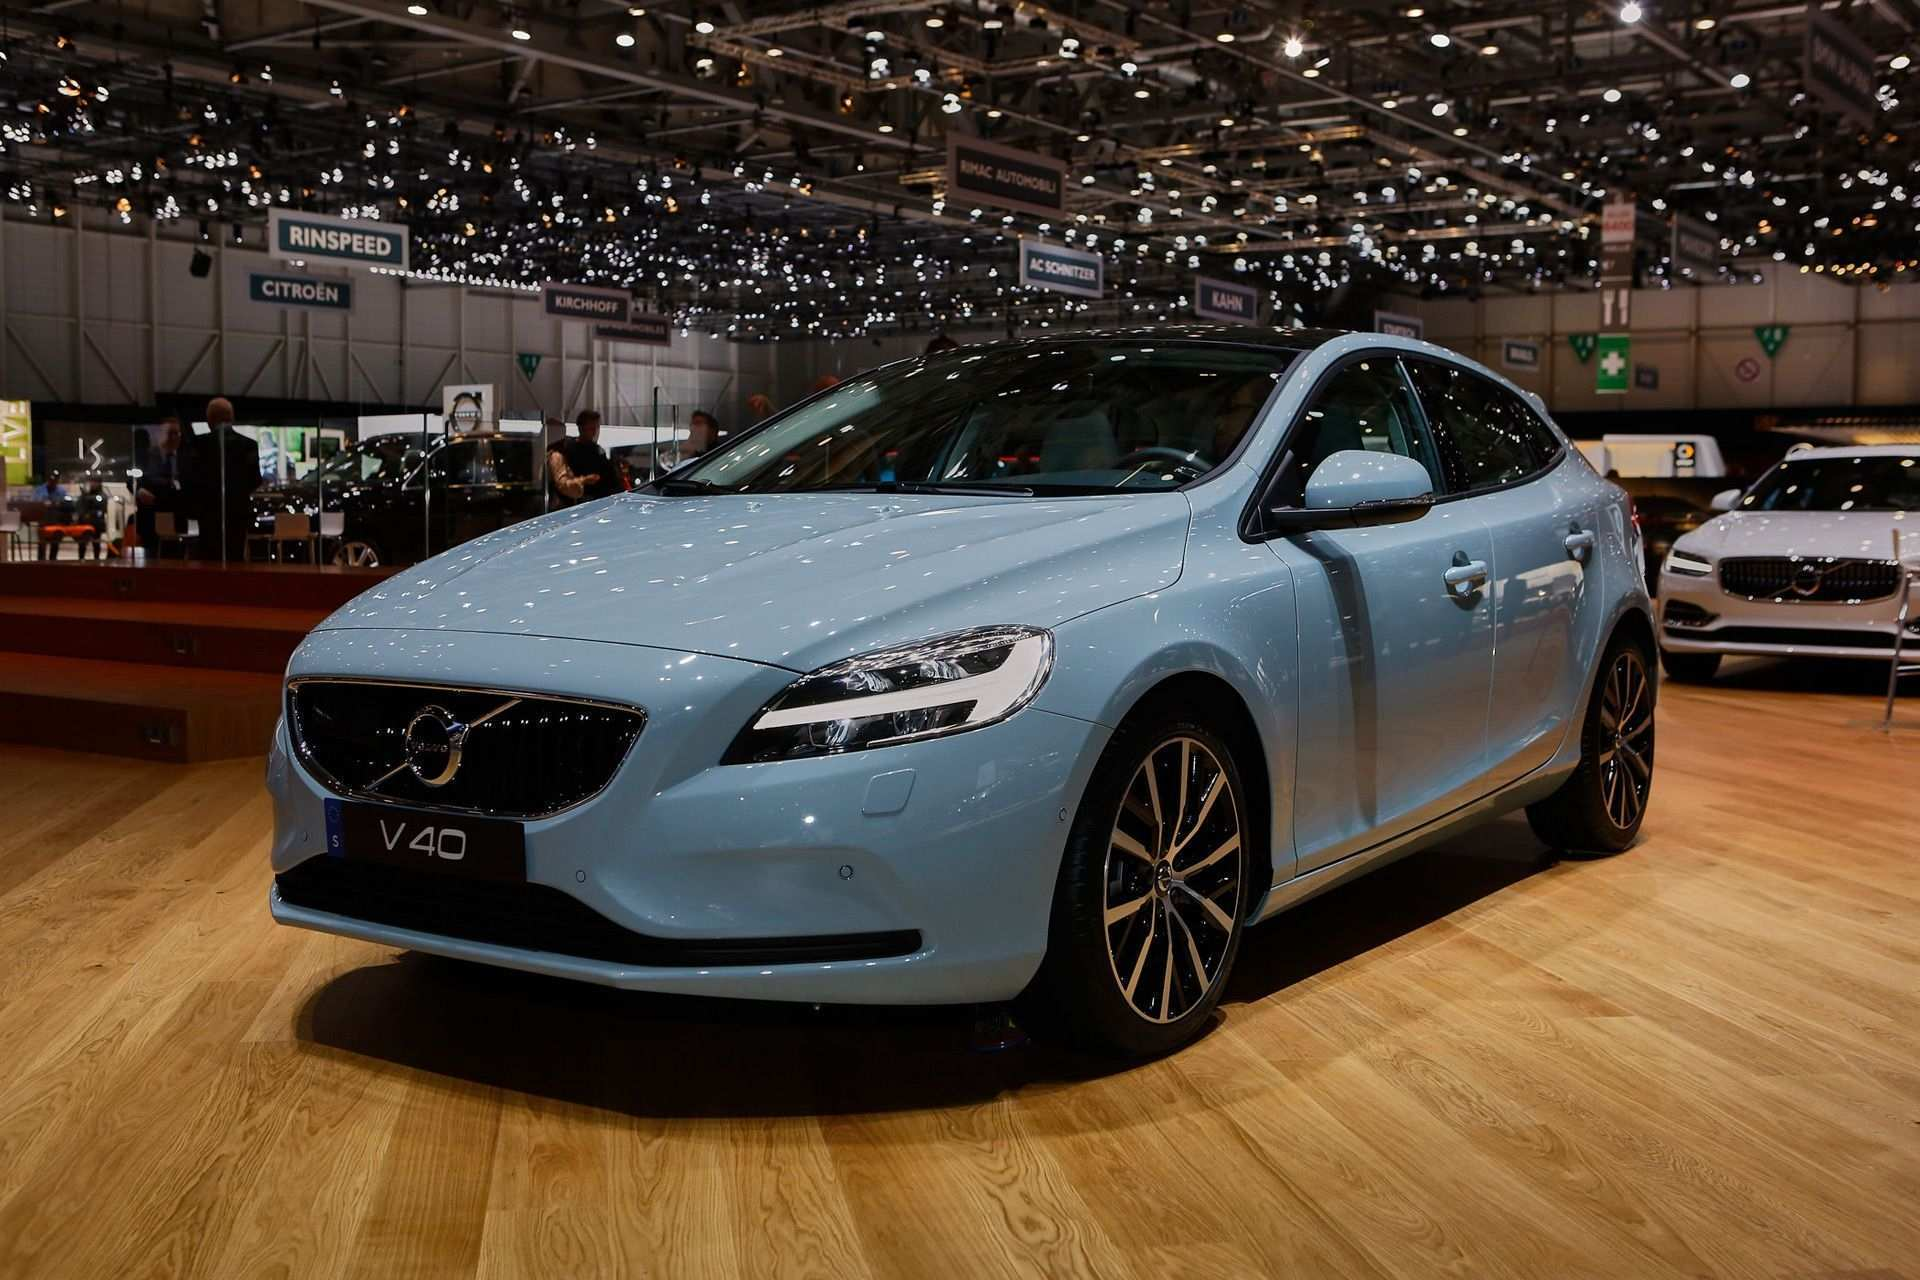 74 All New Volvo V40 2019 Interior Release